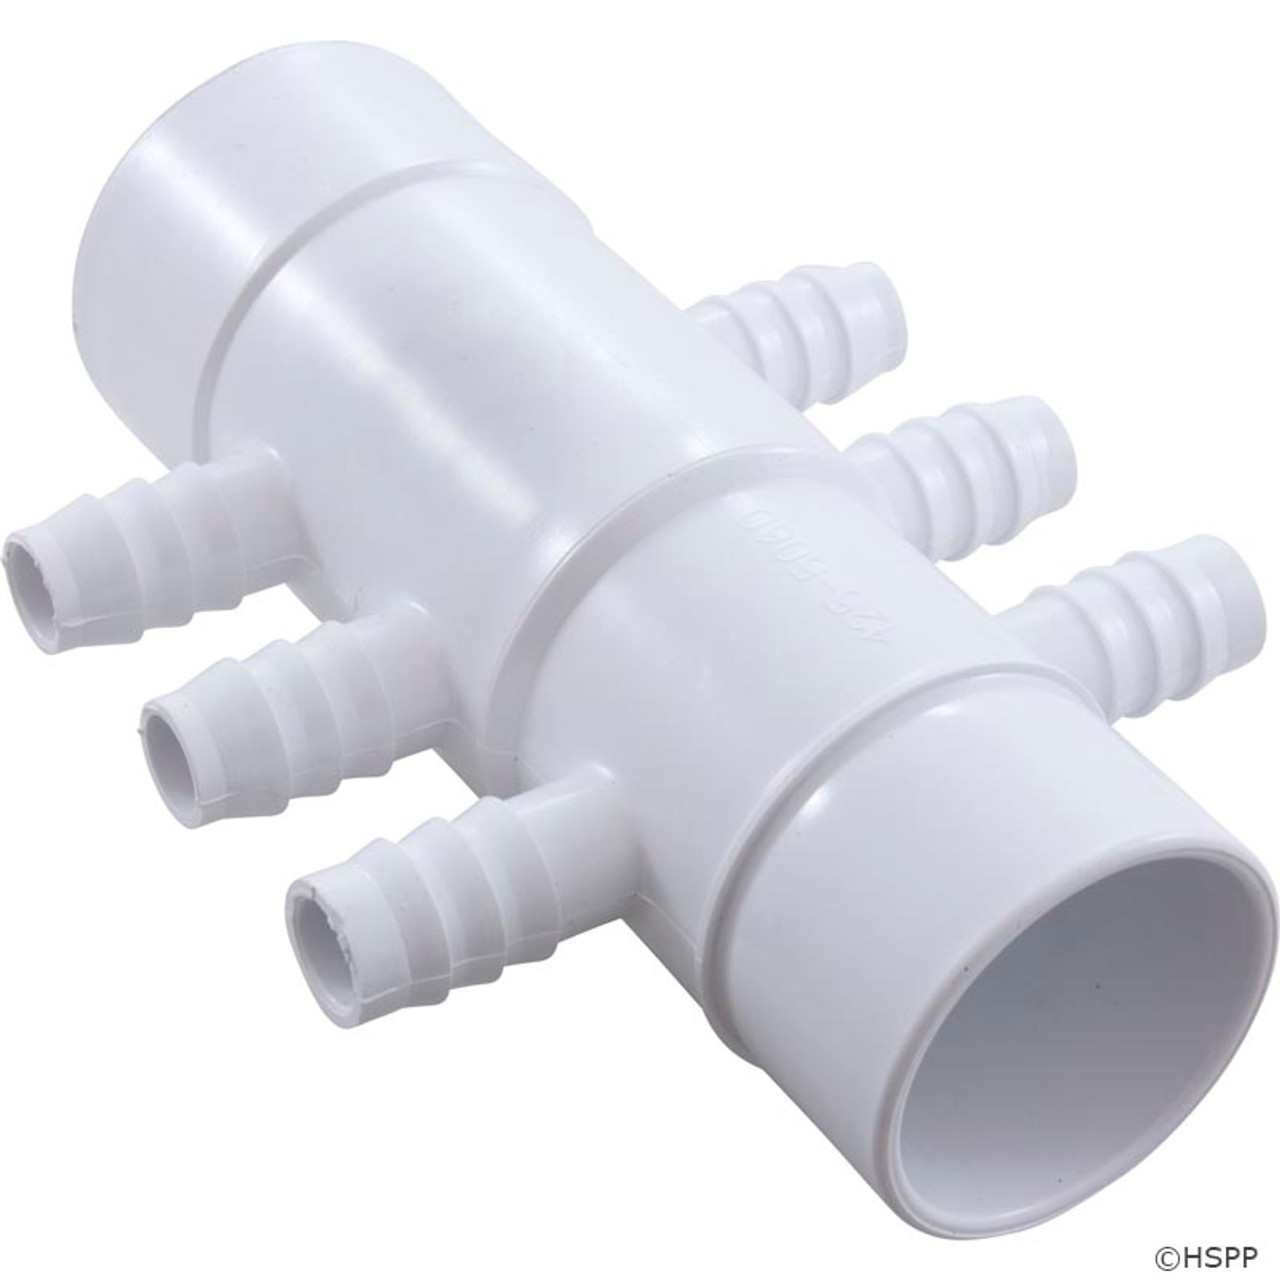 """PVC Water Manifold 2/""""S x 2/"""" Spig with 4 3//4/"""" Barbs Spa Hot tub Waterway 672-7140"""